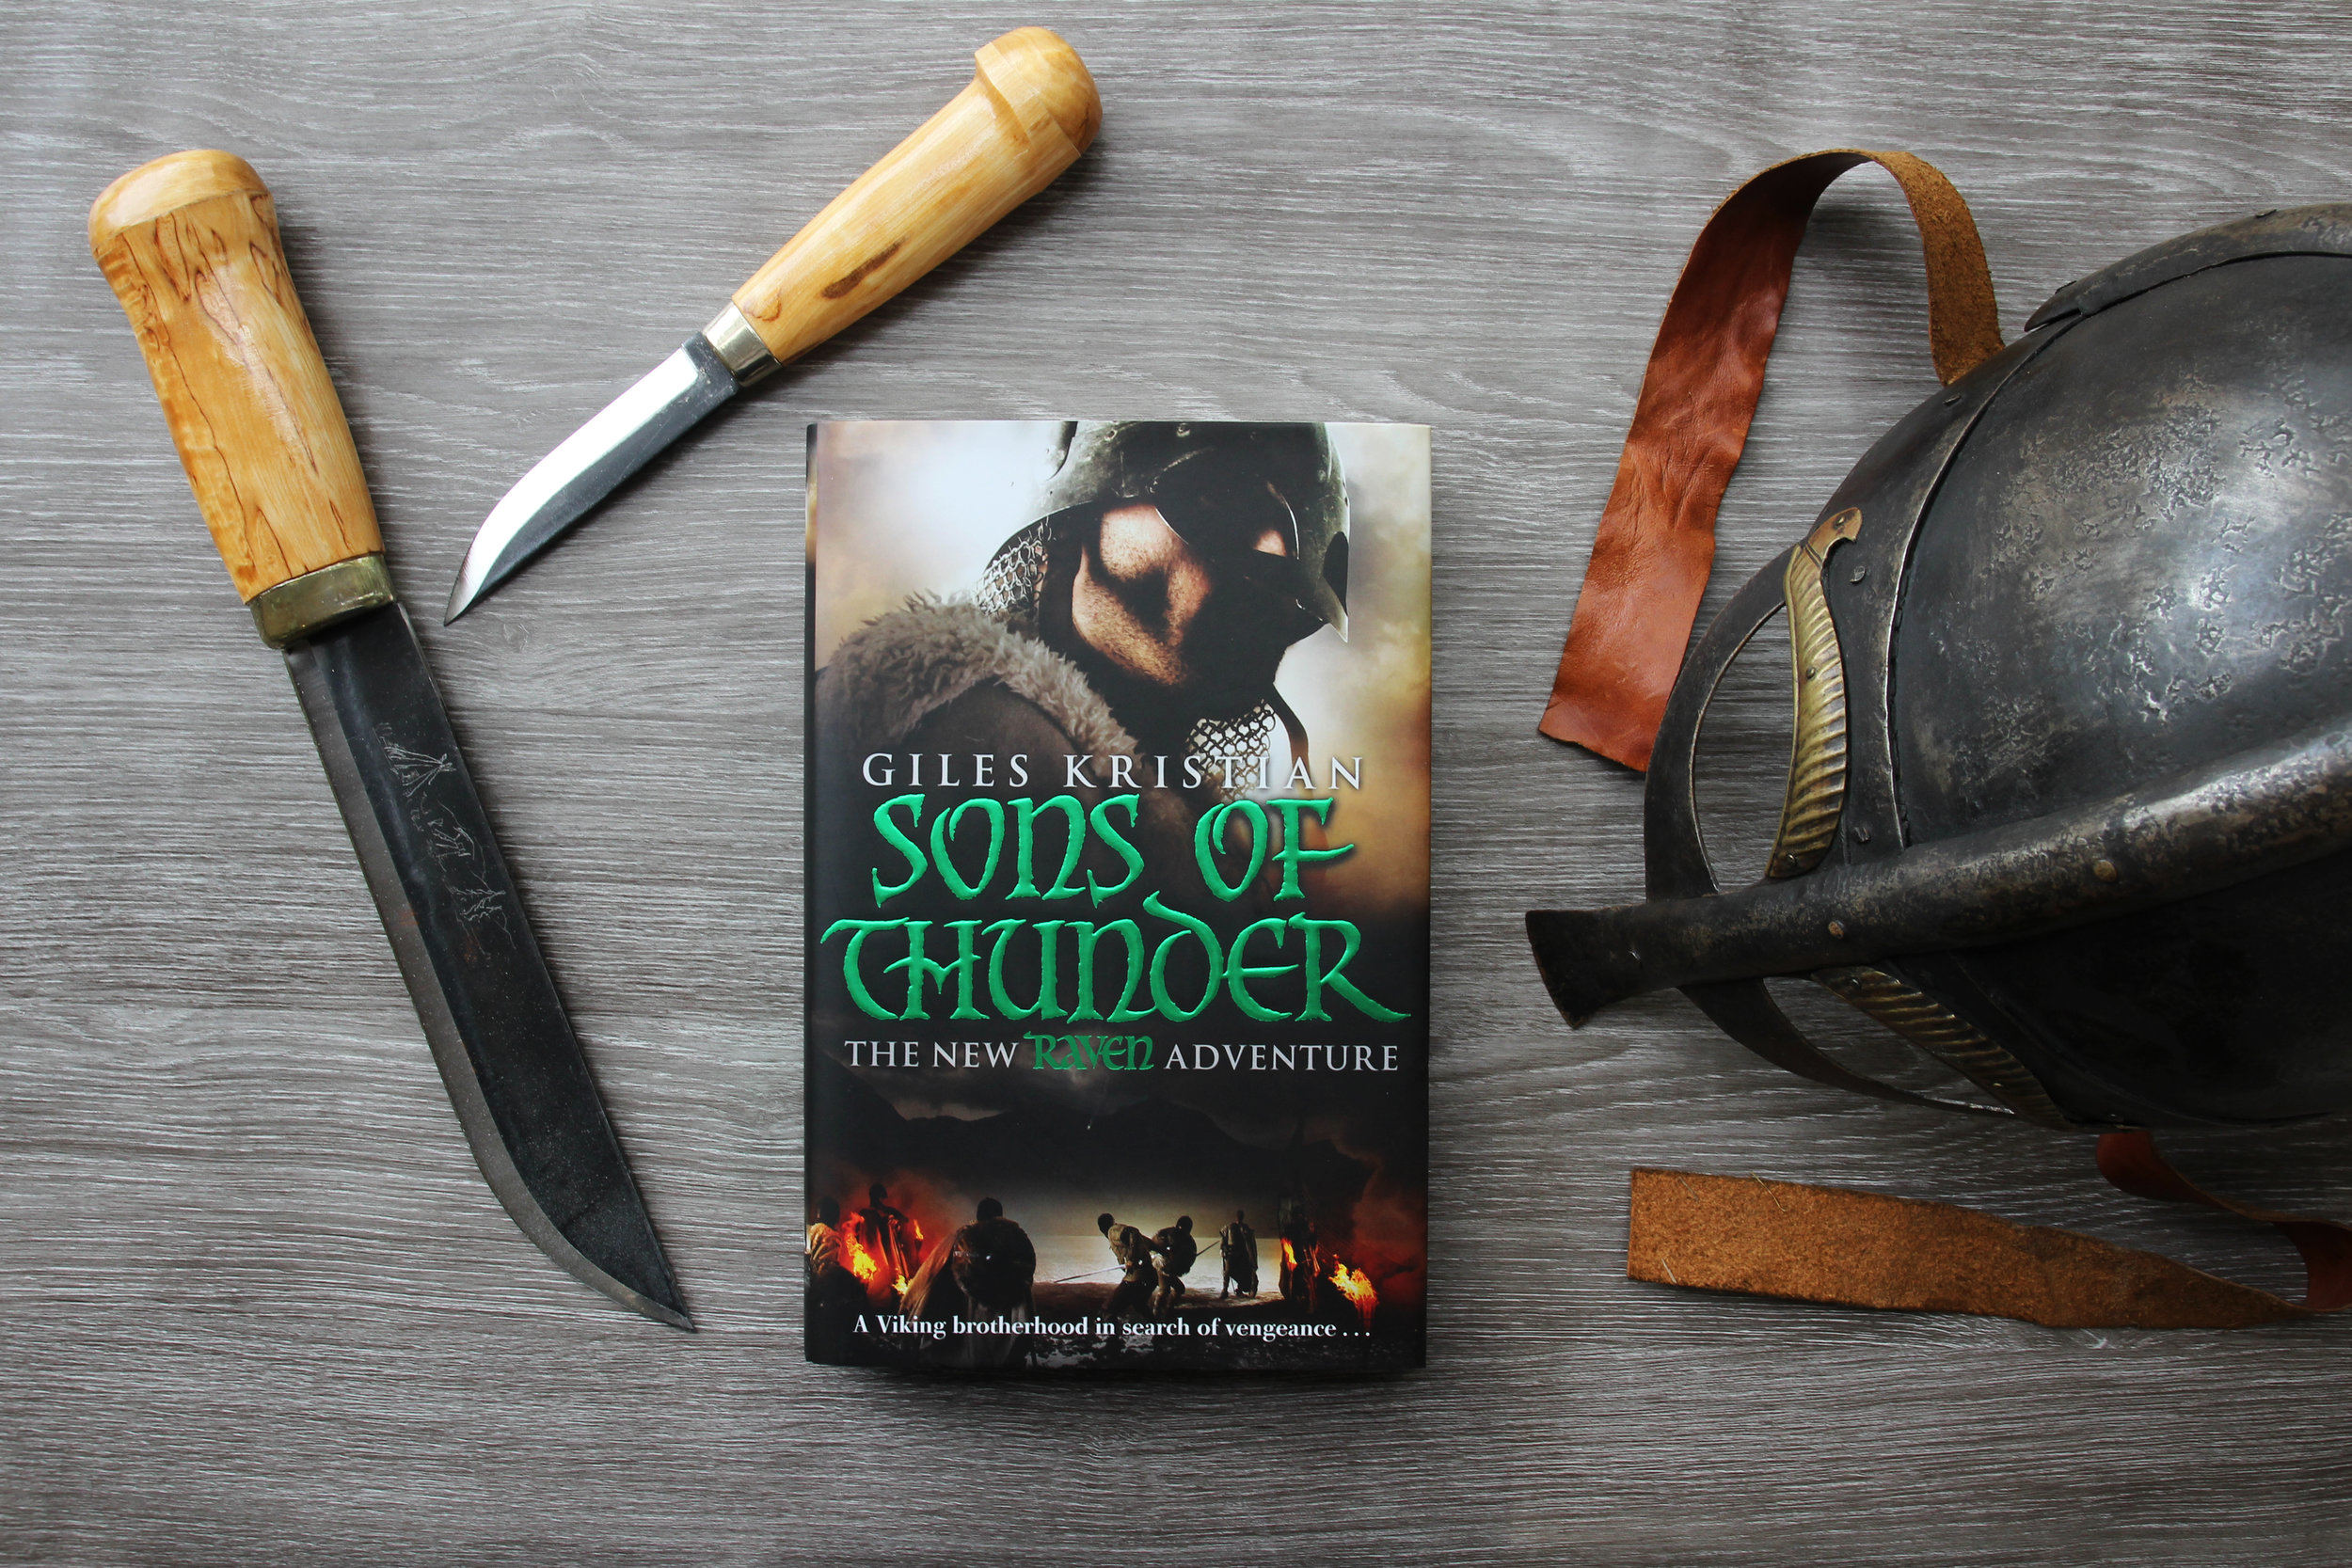 First Edition Sons of Thunder by Giles Kristian